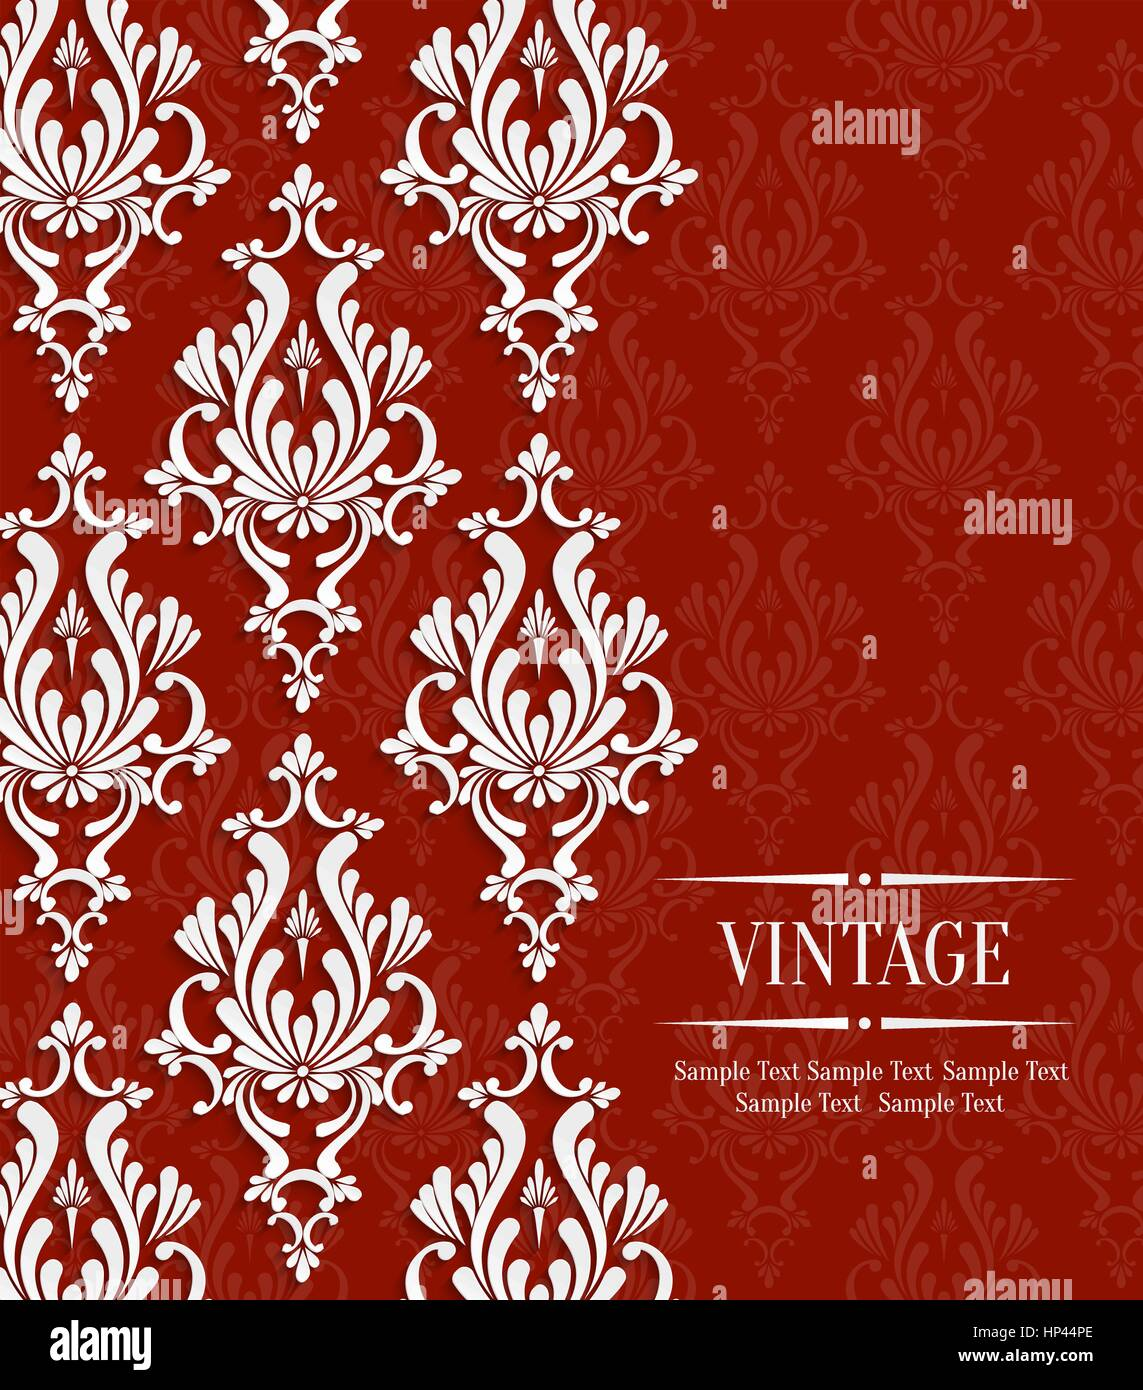 Vector Red Vintage Background with Floral Damask Pattern for Wedding ...